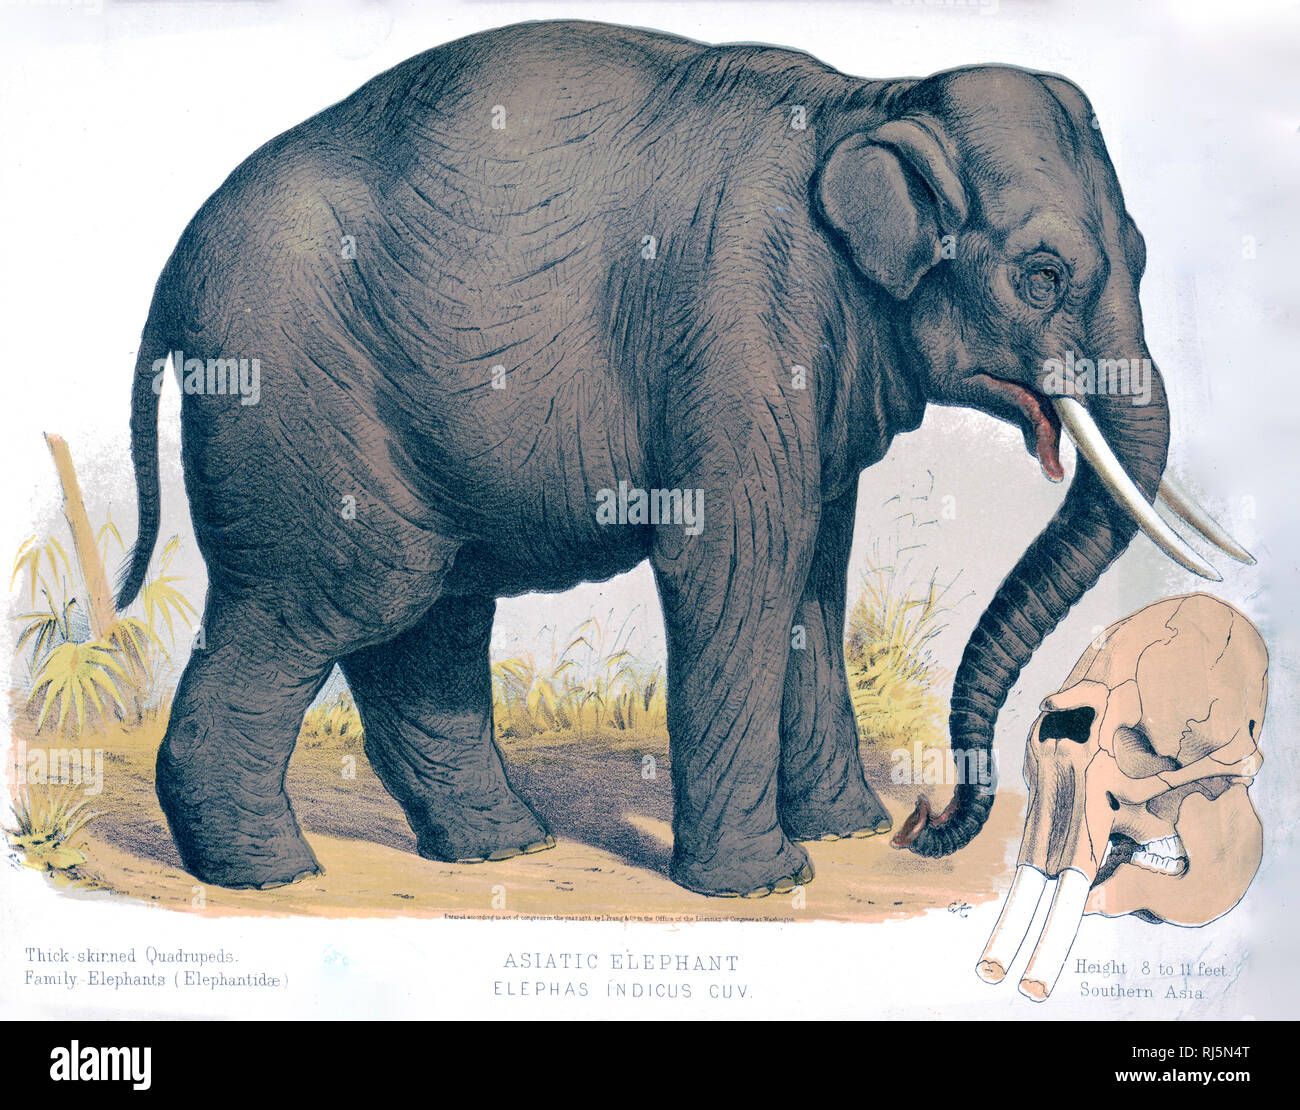 Thick-skinned Quadrupeds. Family - Elephants (Elephantidæ). - Stock Image